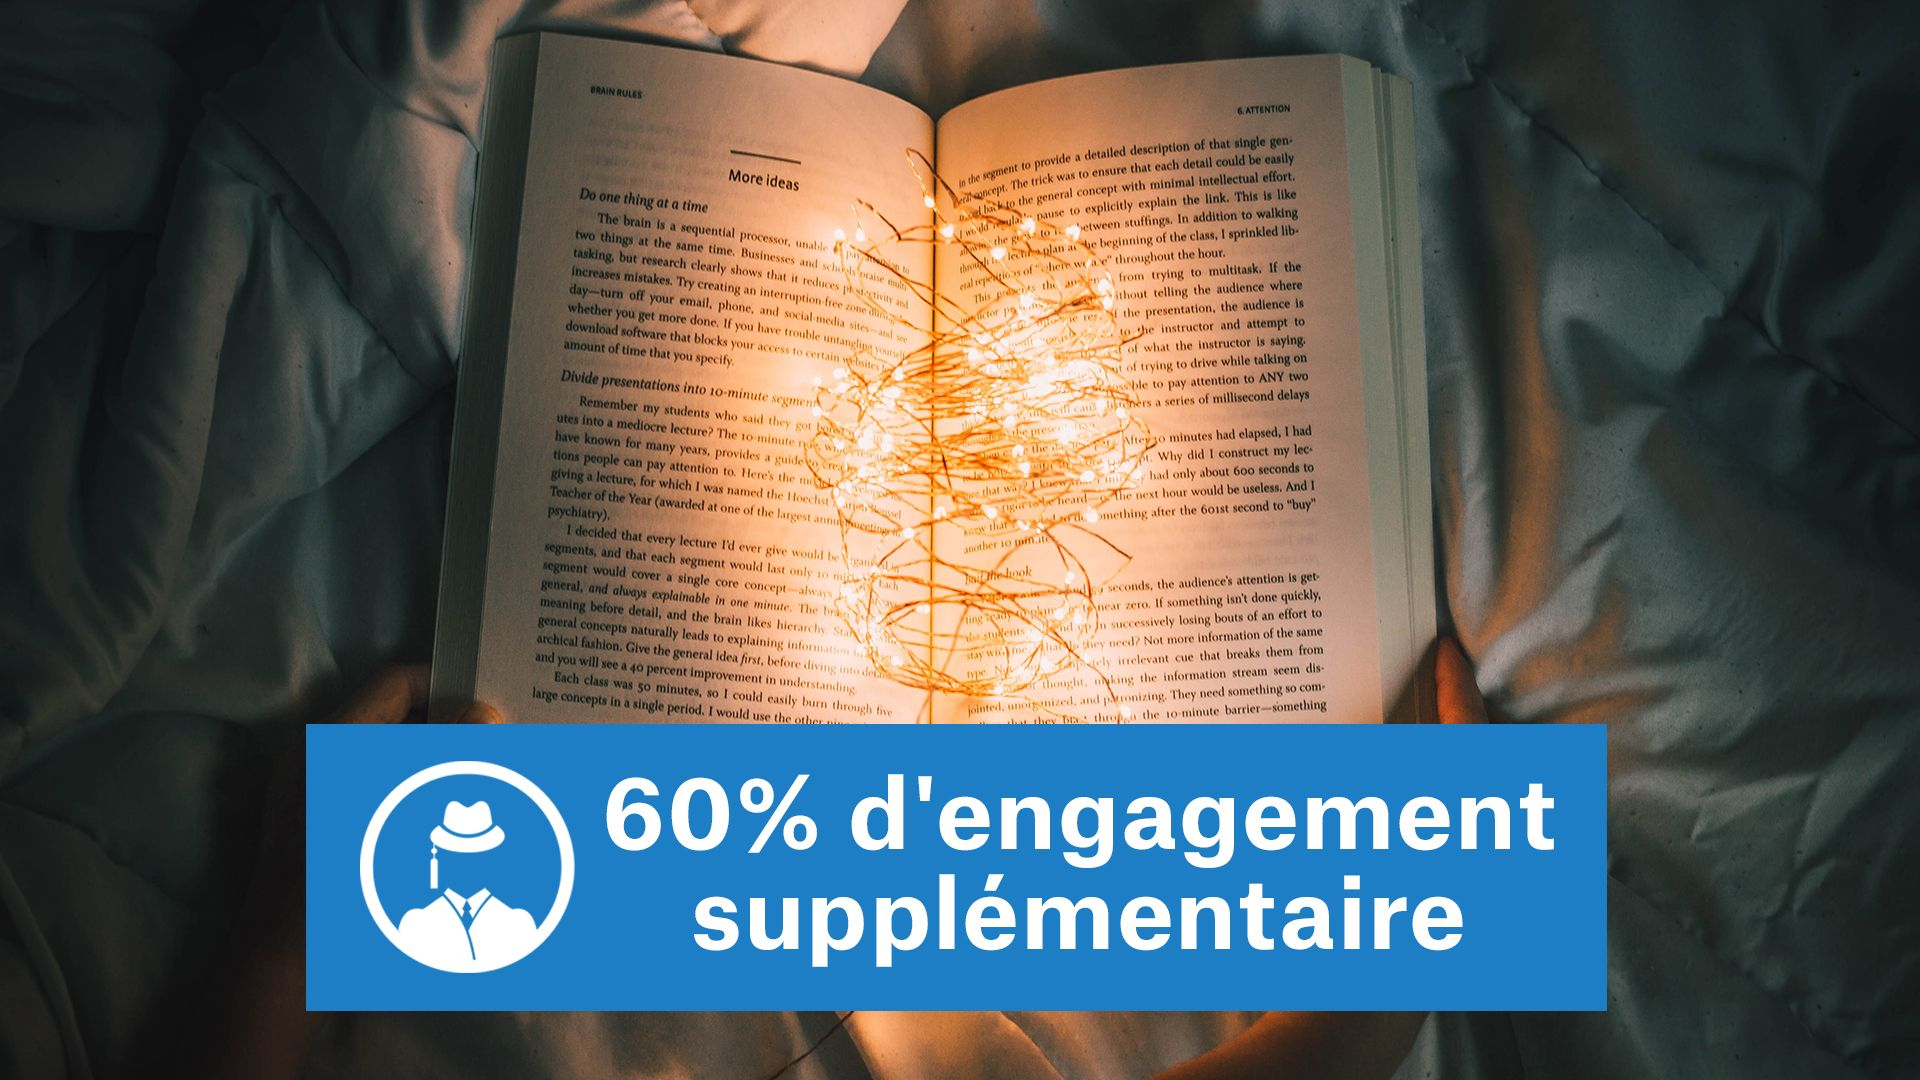 60% d'engagement supplémentaire [recherche de données] #GrowthHacking #WebMarketing #FormationGrowthHacking #CentreDeFormationFrance #TunnelAARRR #AARRR #SocialMedia #CommunityManagement #SEO #MarketingDigital #SiteWeb